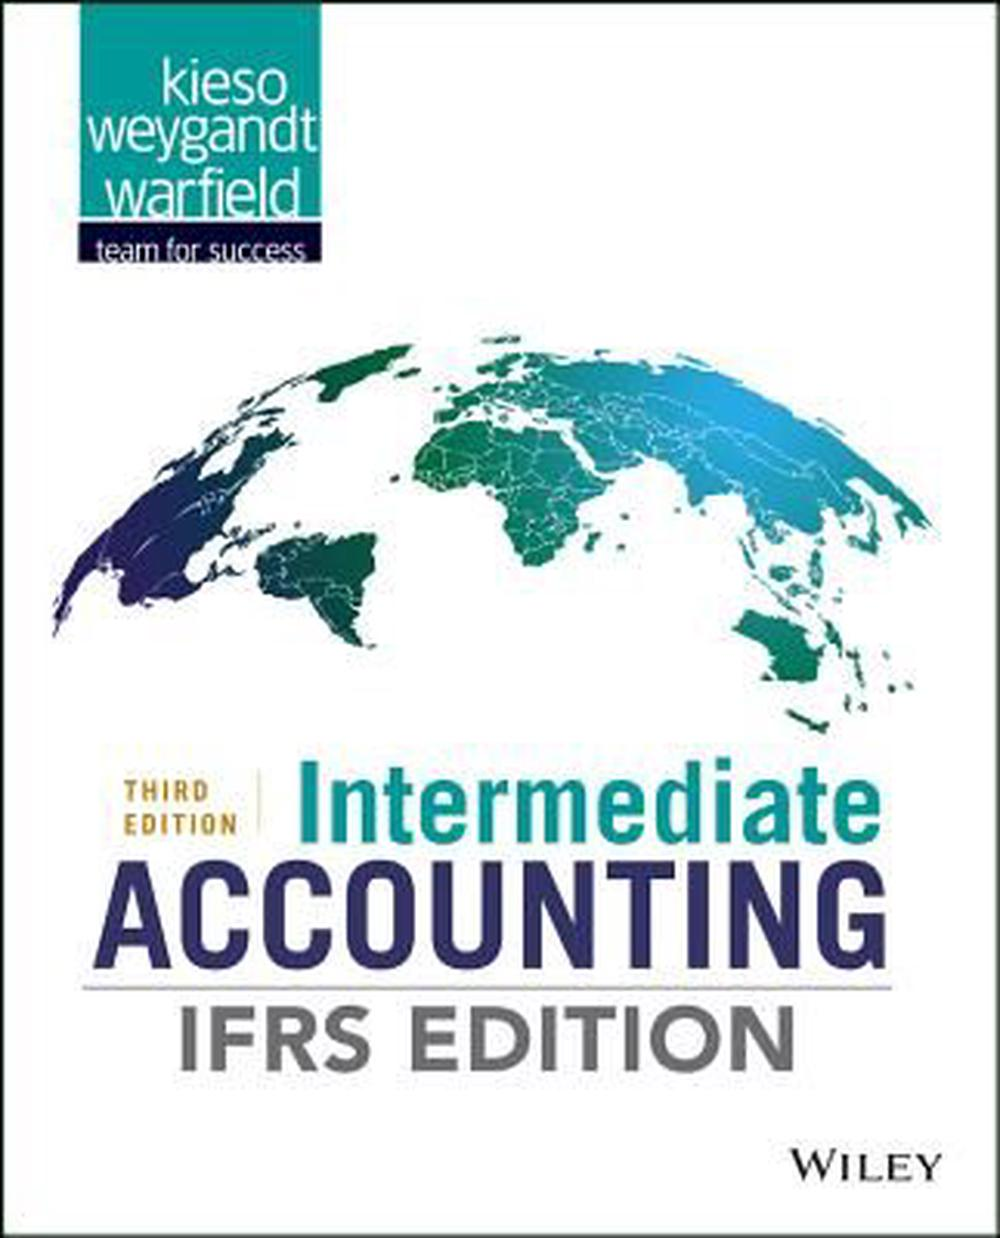 intermediate accounting 17th edition There are two sets of accounting standards gapp and igapp by the year _____ gapp will be phased out for igapp.